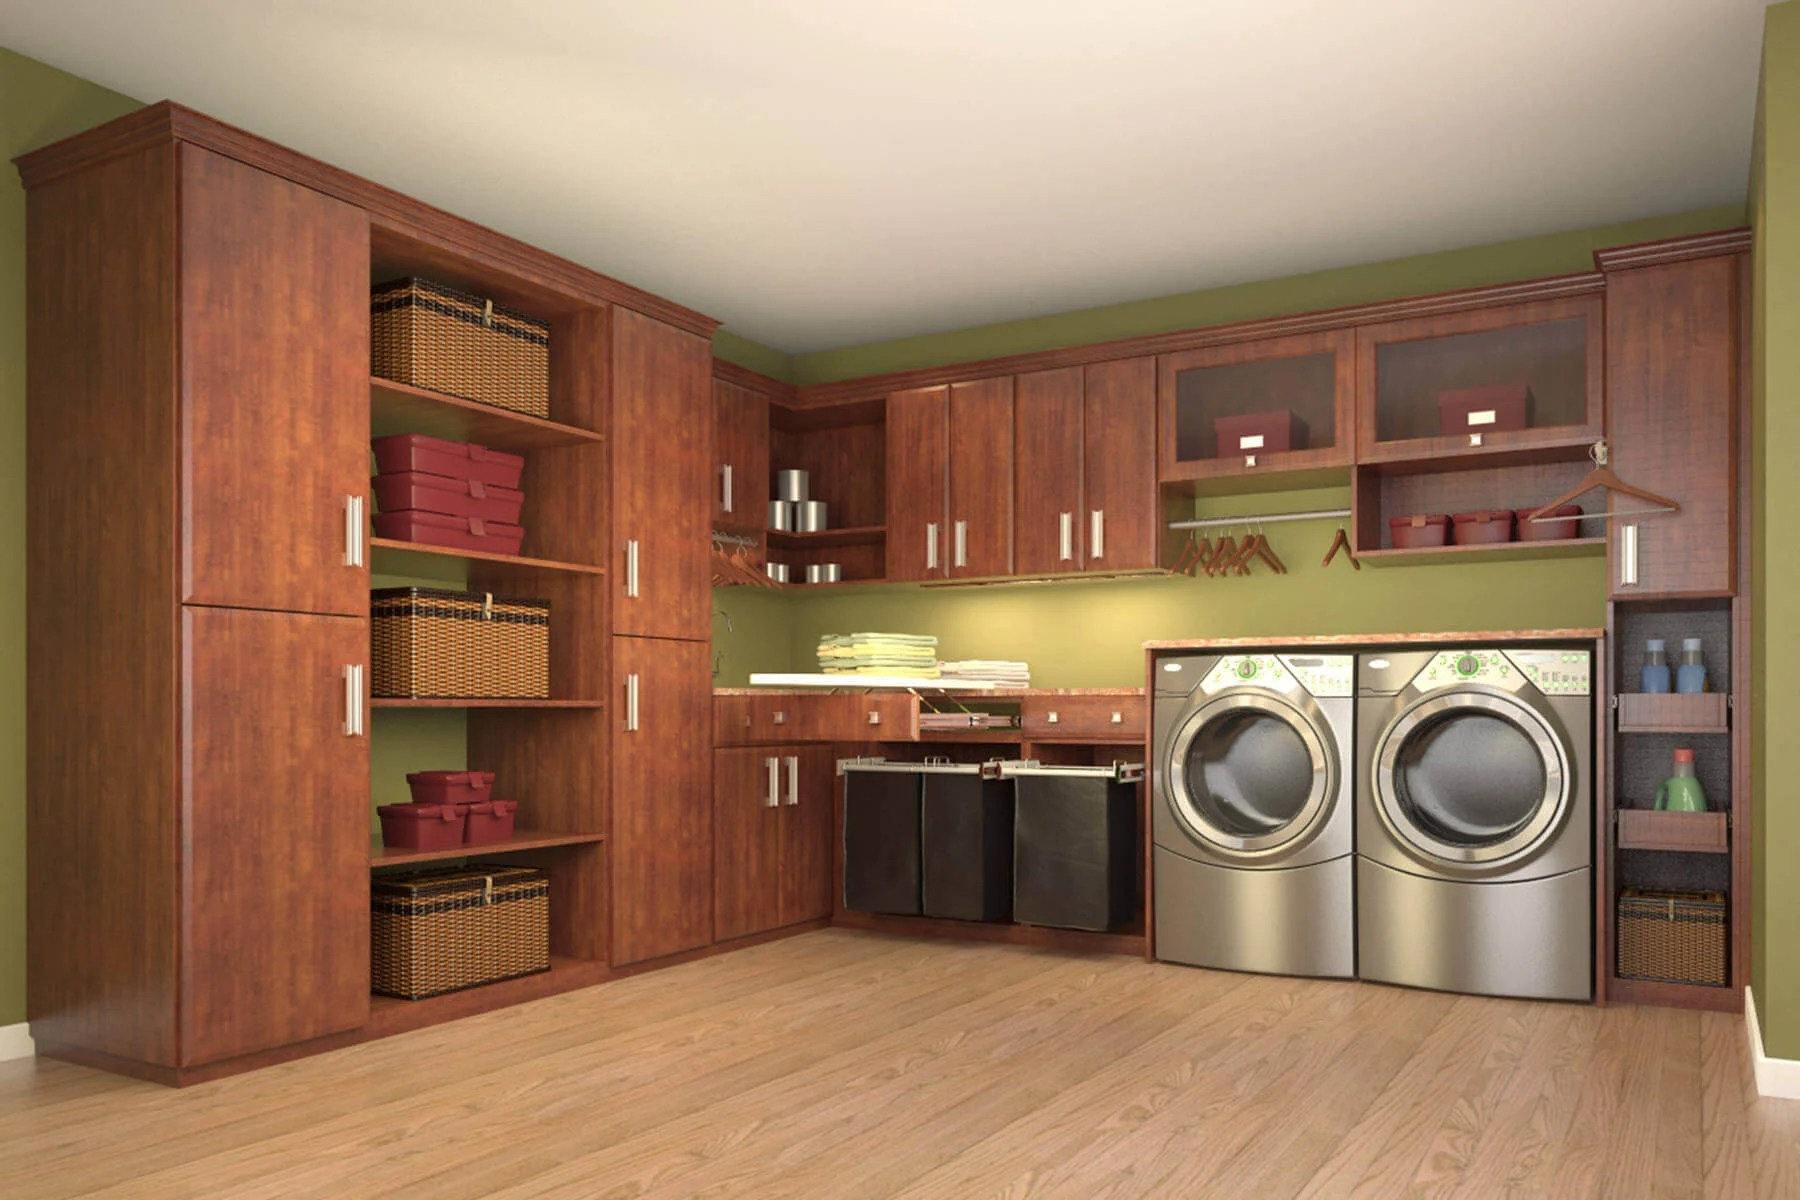 101 Incredible Laundry Room Ideas 2019 Pictures